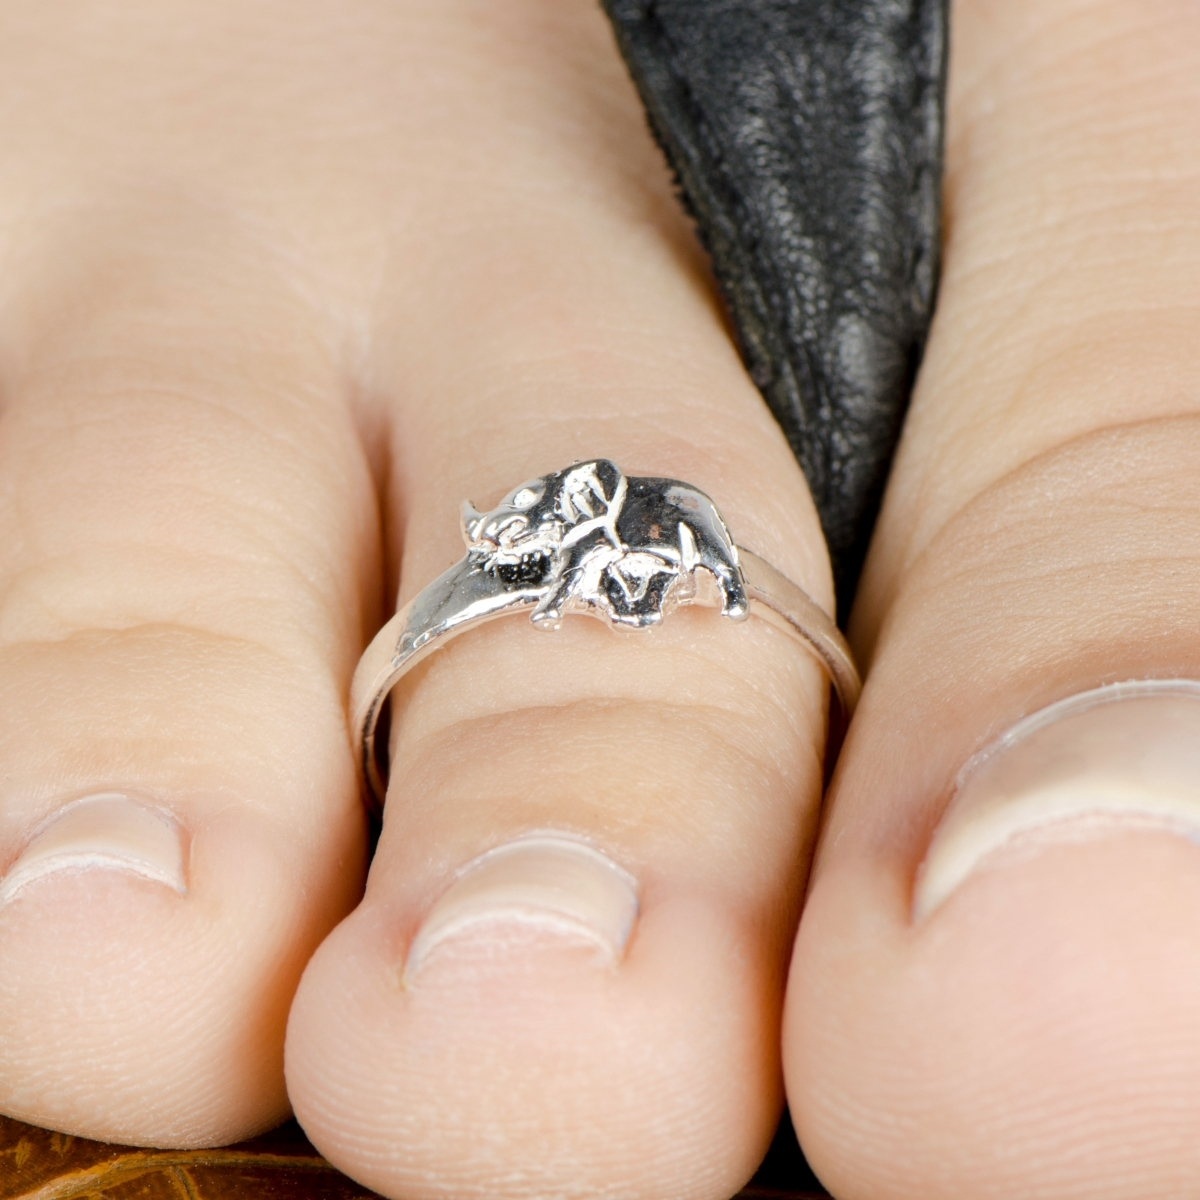 Tr – Elephant – Grateful Days Pertaining To Best And Newest Toe Engagement Rings (View 15 of 15)